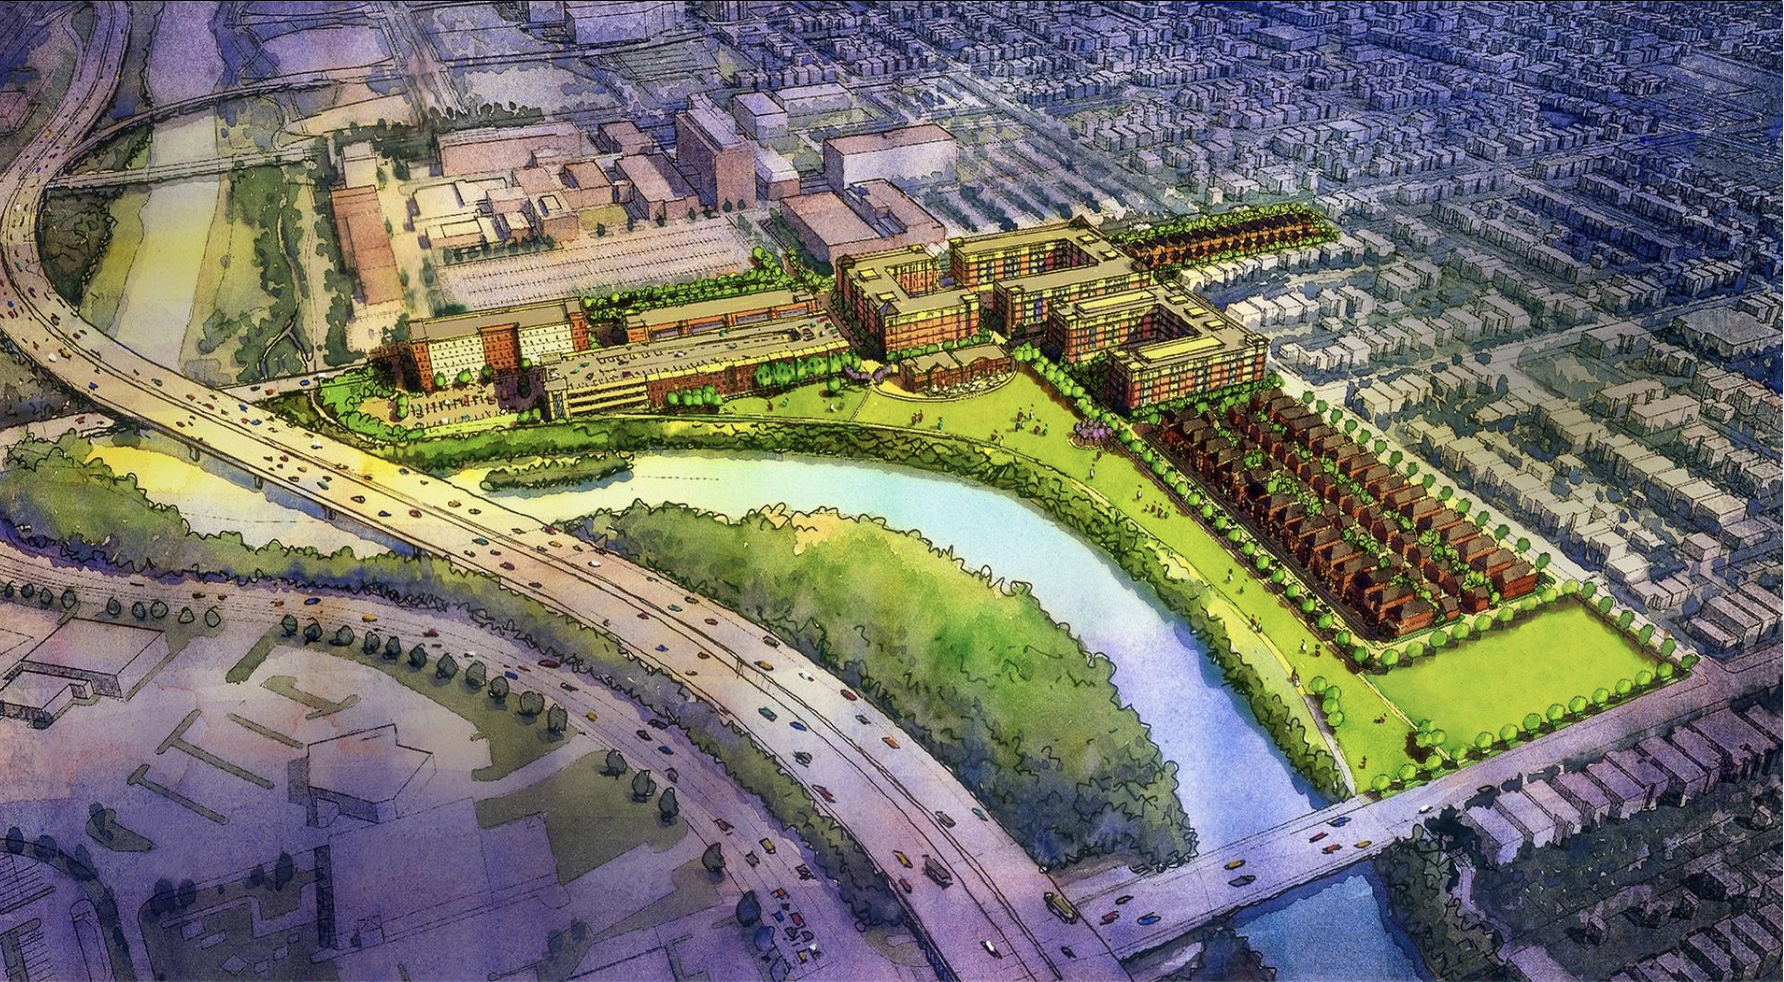 Aerial site rendering of proposed development on Battelle site.